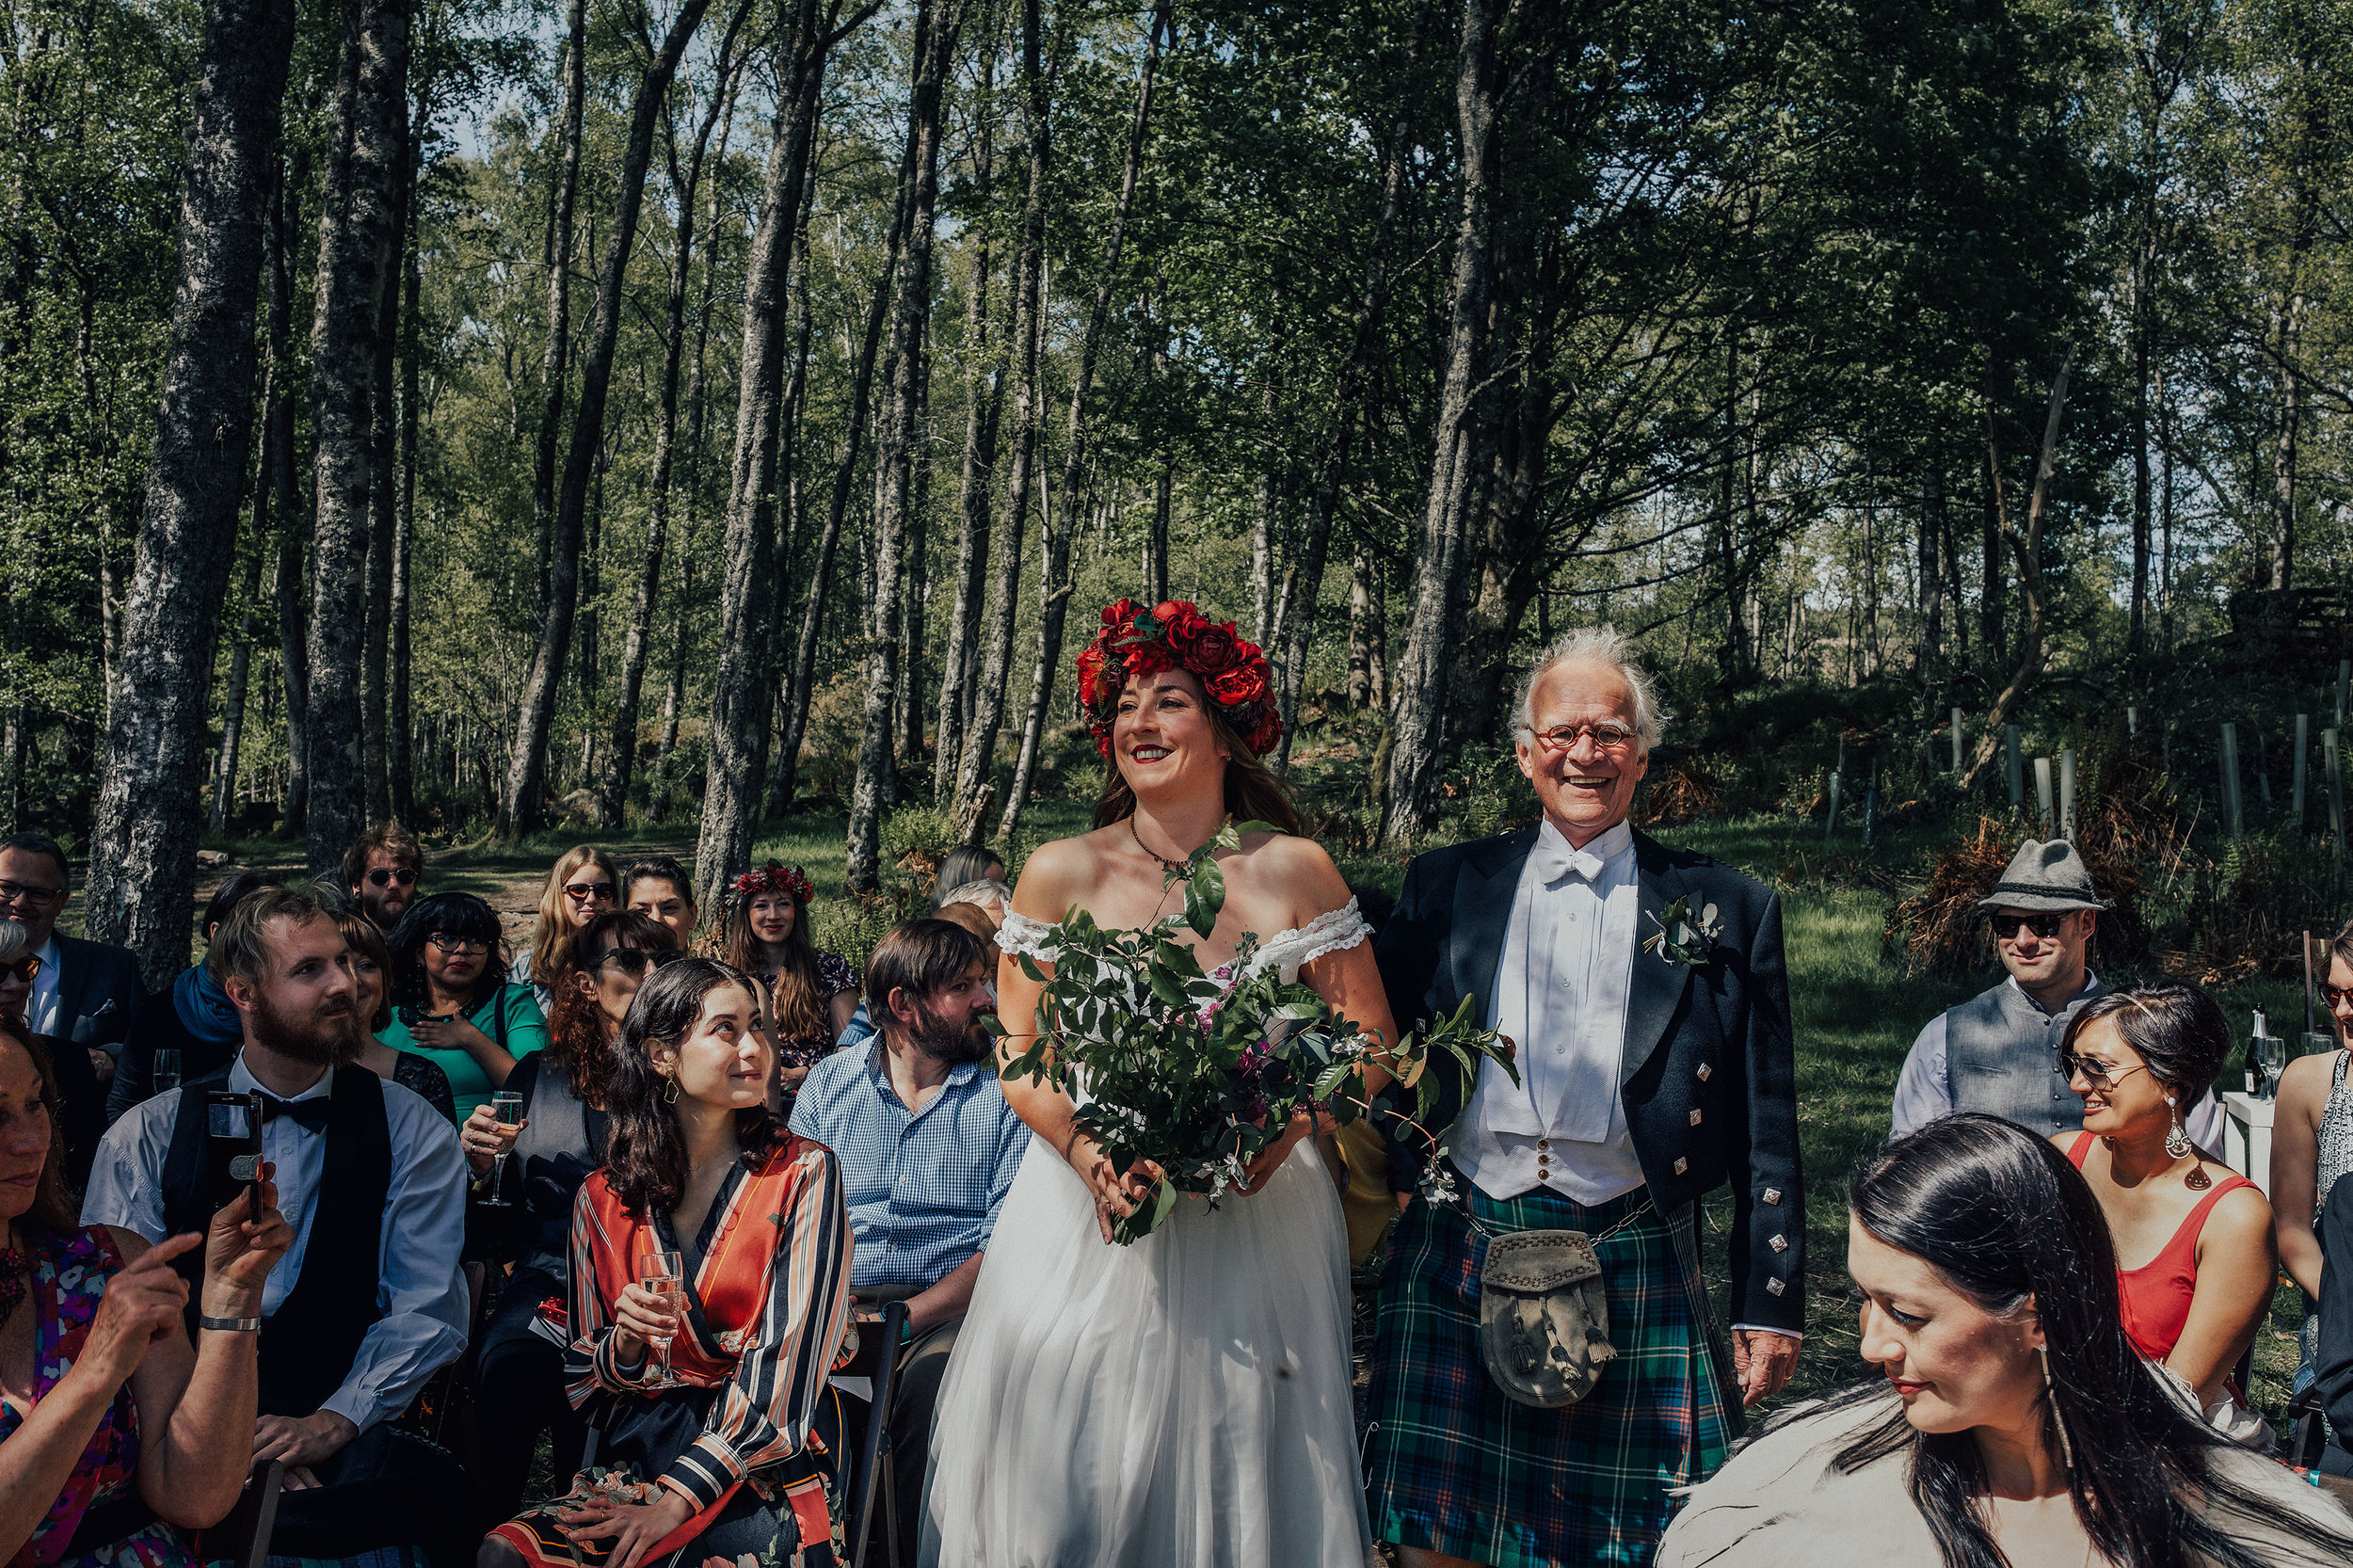 COMRIE_CROFT_WEDDINGS_PJ_PHILLIPS_PHOTOGRAPHY_56.jpg